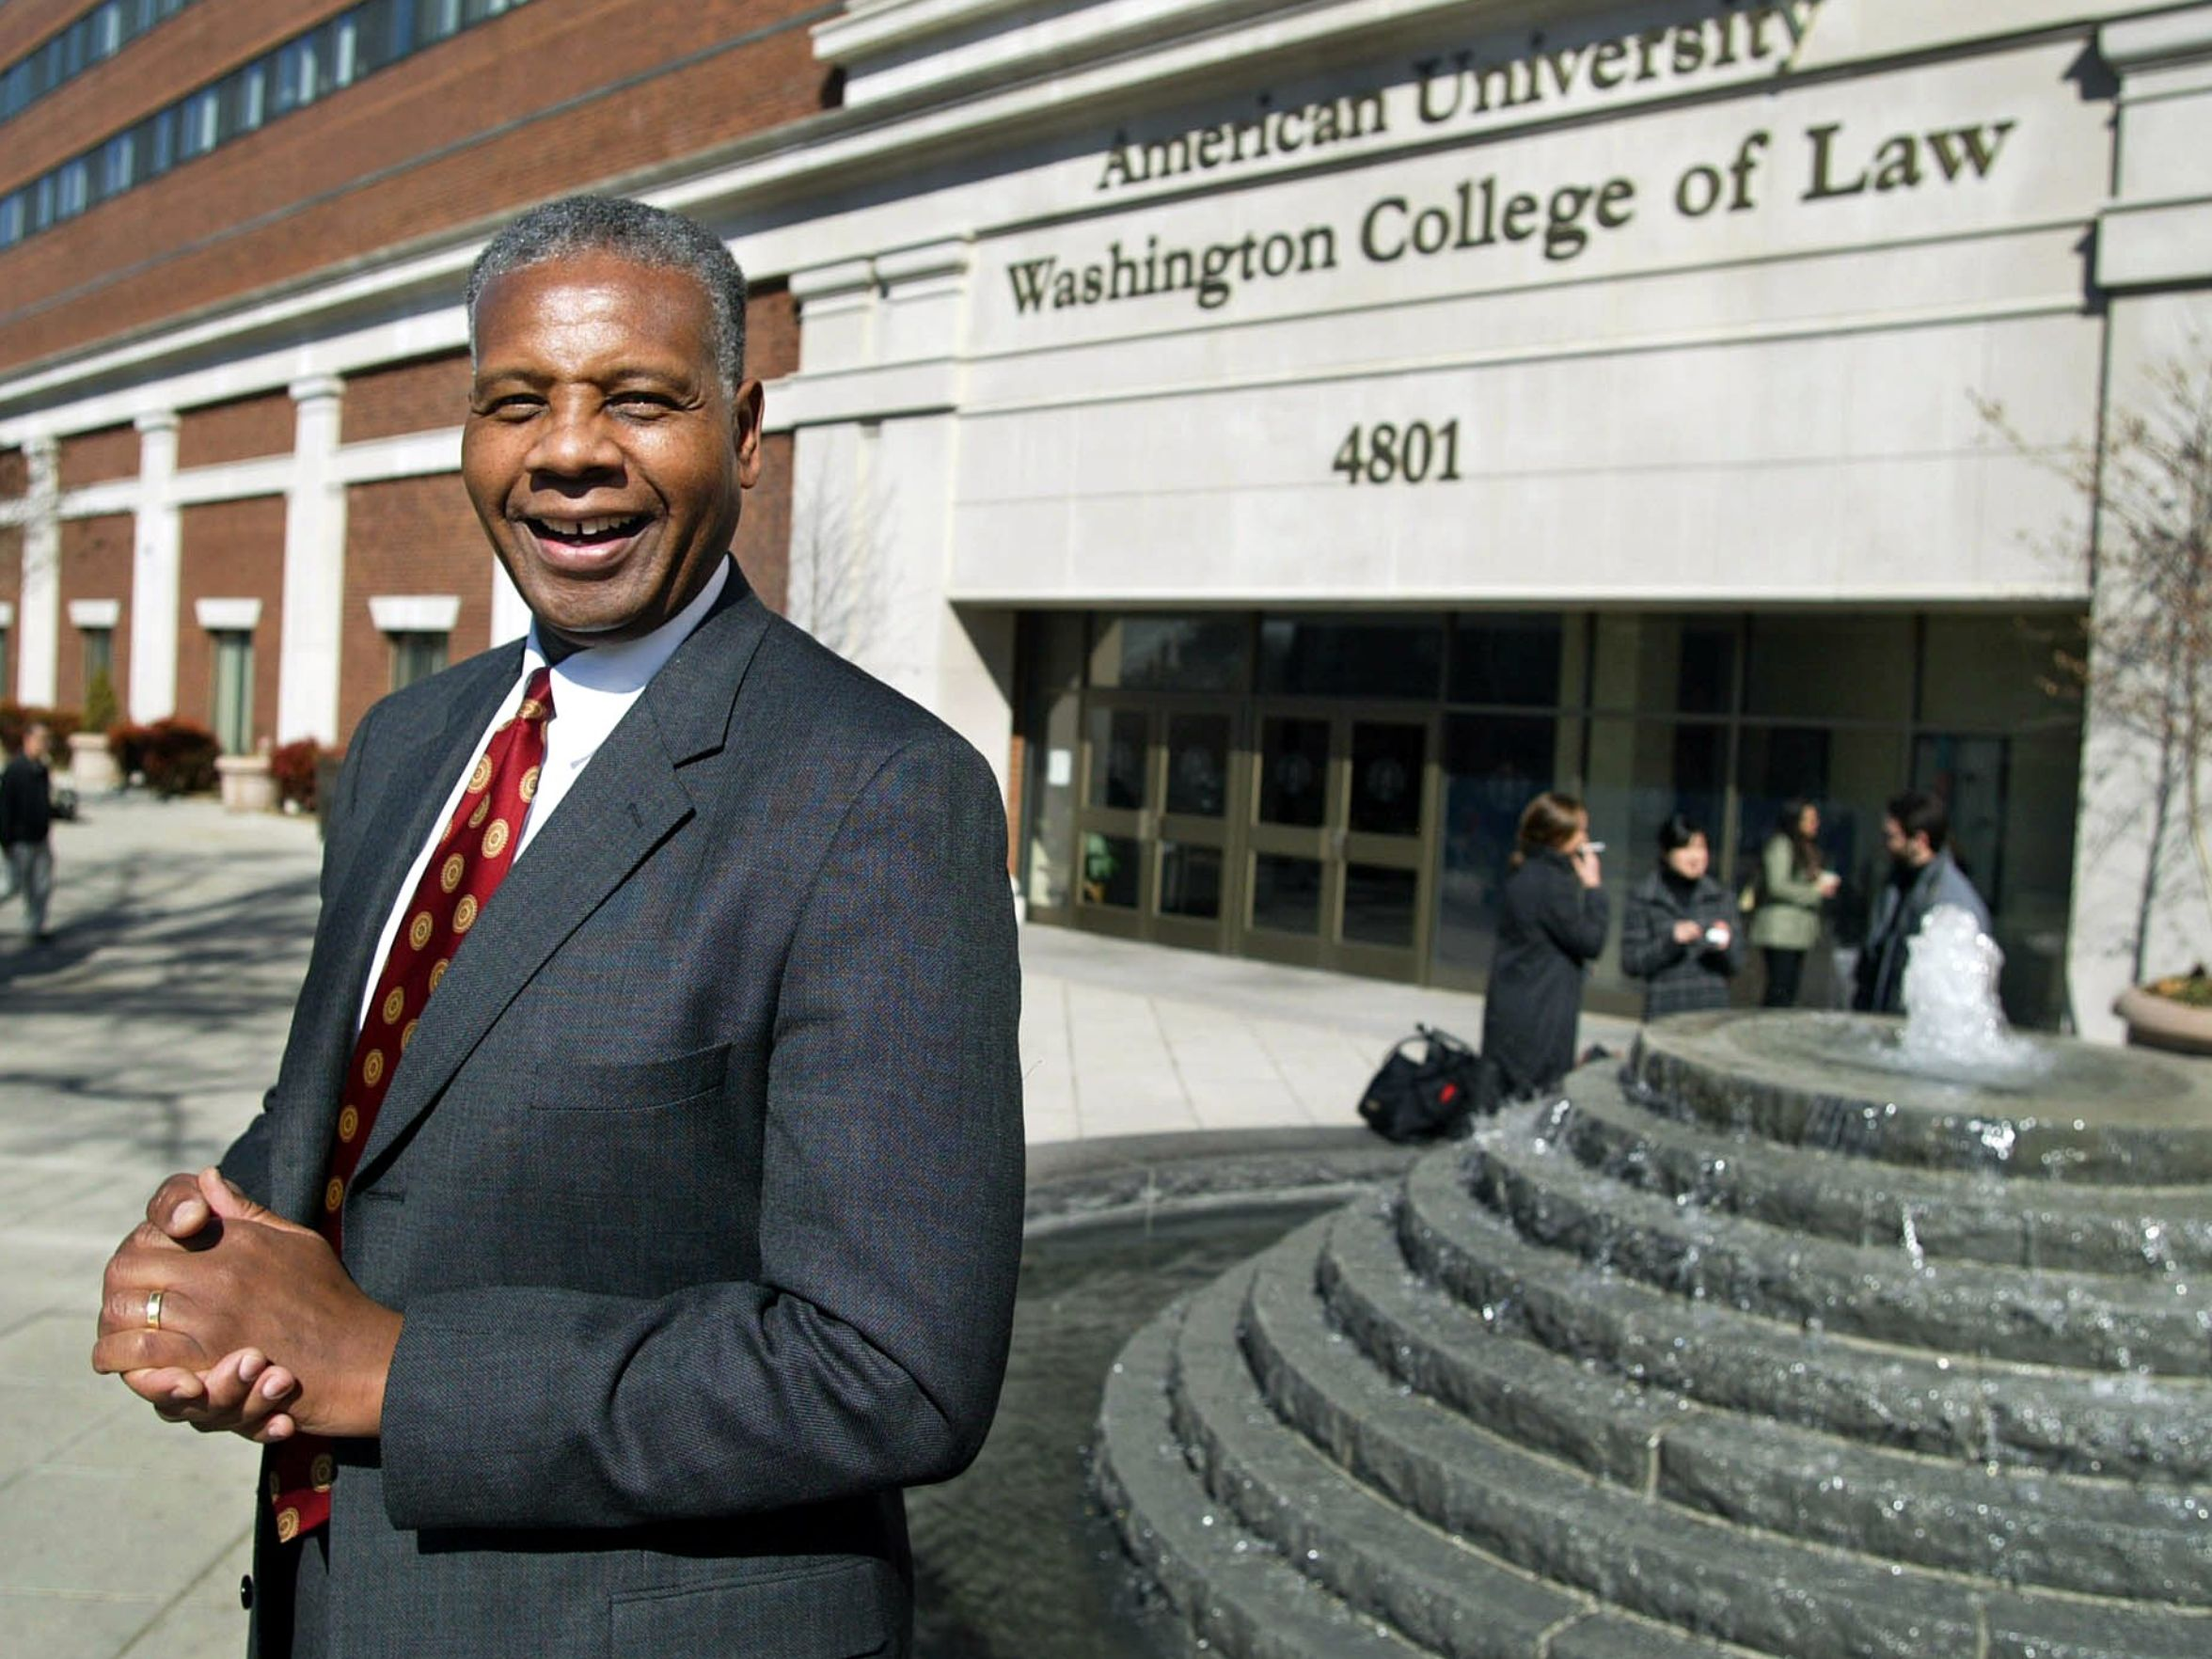 Perry Wallace outside Law School Tennessean photo.jpg